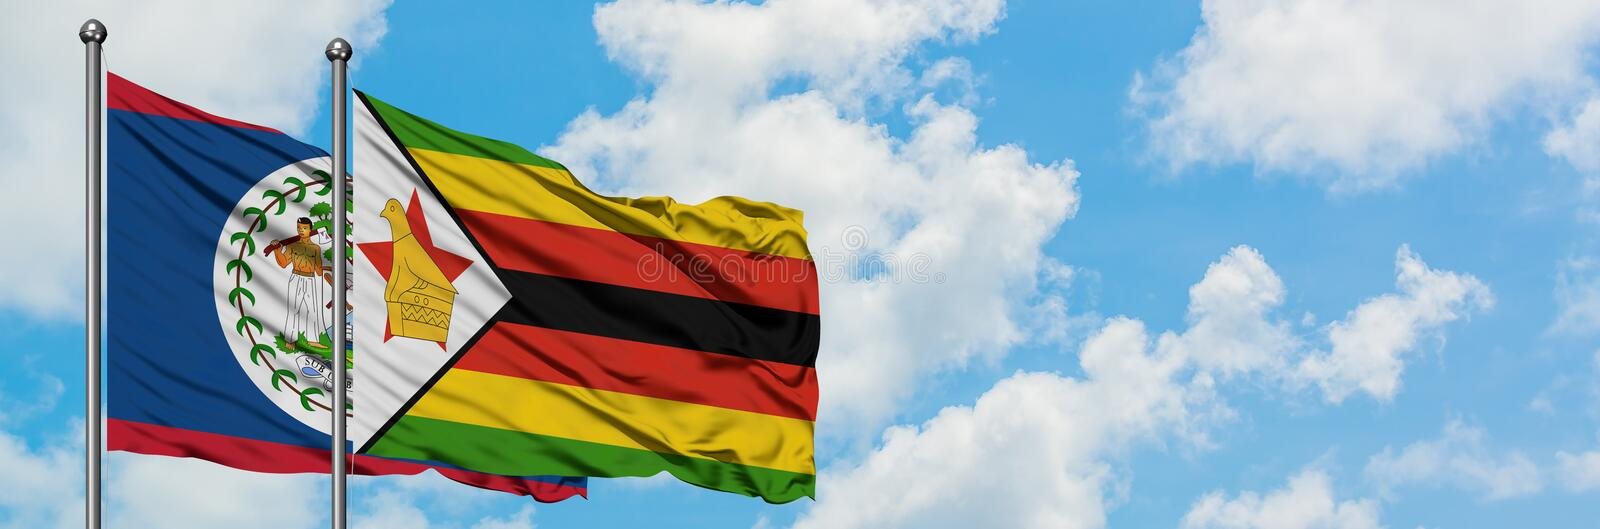 Belize and Zimbabwe flag waving in the wind against white cloudy blue sky together. Diplomacy concept, international relations. Consul, diplomat, ambassador royalty free stock photography